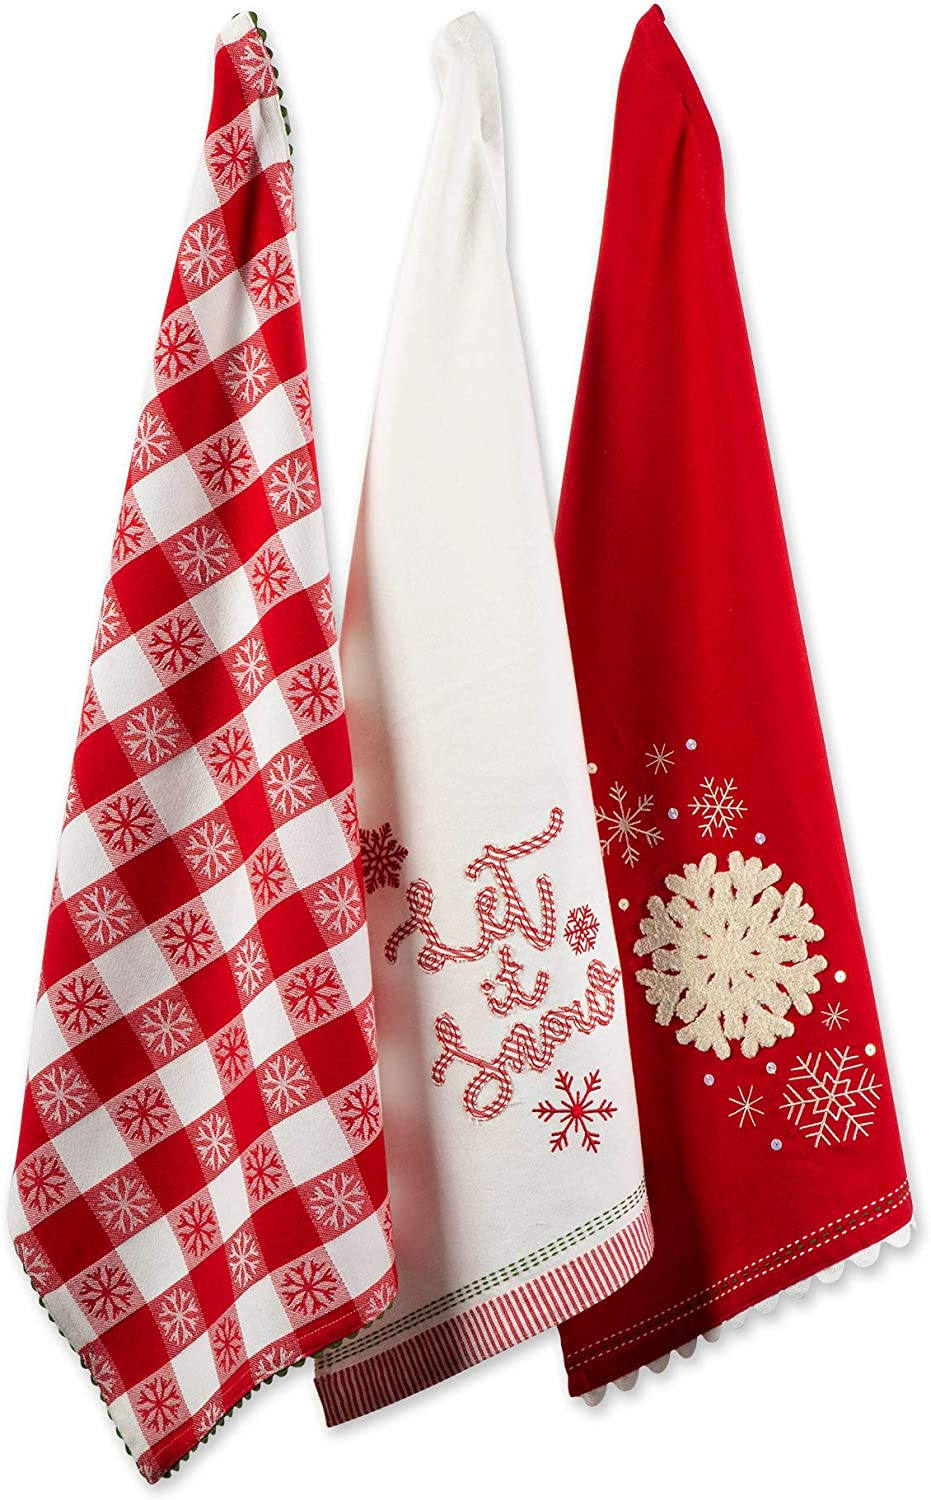 DII North Pole Holiday Chef Collection It 4 years warranty S Seasonal Wrap Introduction Towel Let Dish Set